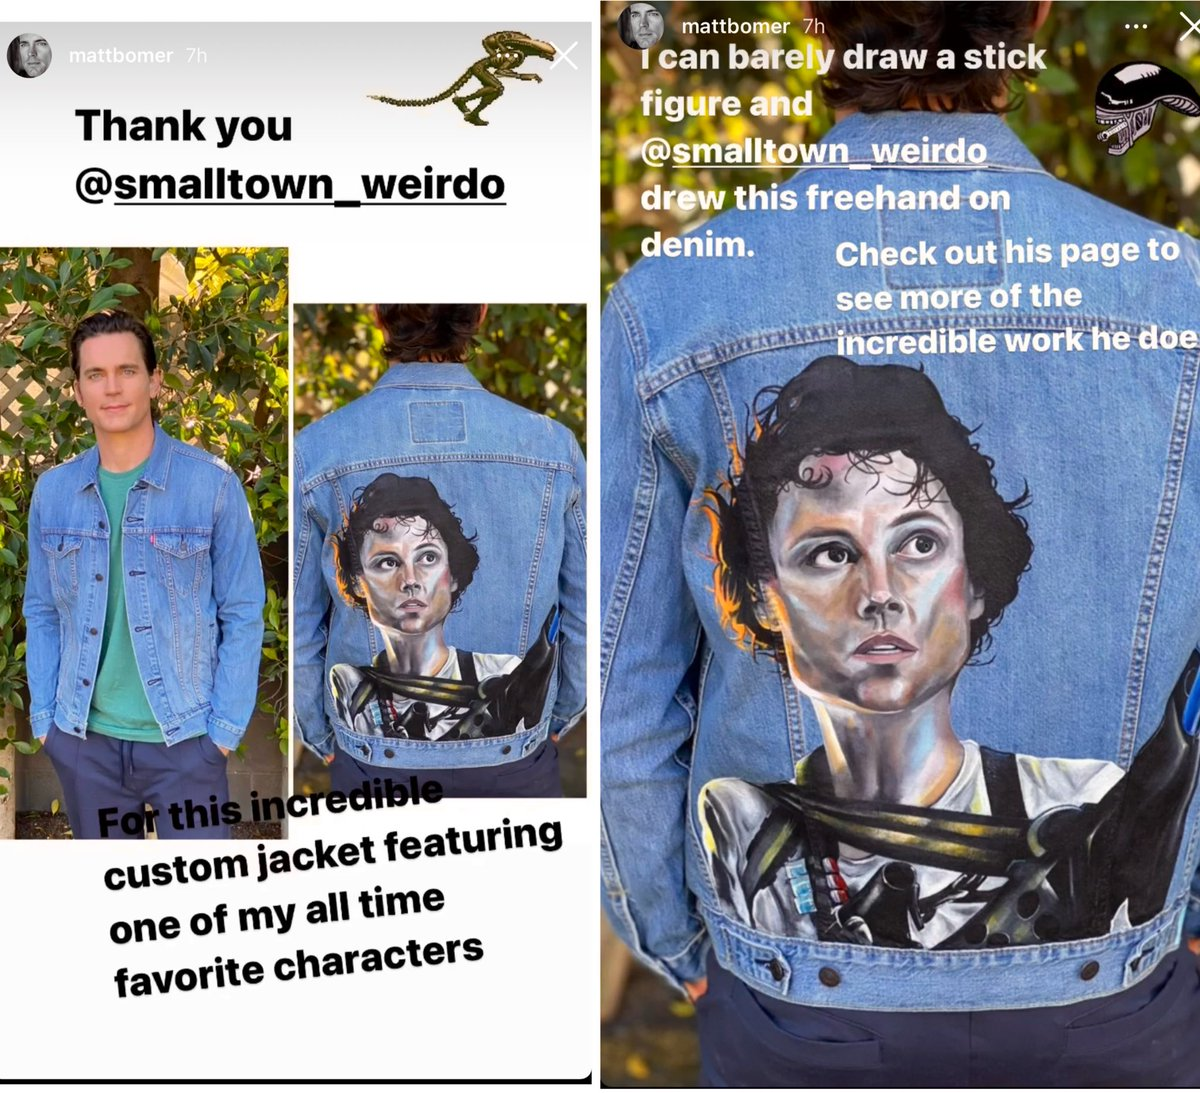 #mattbomer #StyleIcon Love the funky Jacket, just can't believe he can't draw. I think he is made of magic fairy dust & is the most nice and supremely talented person alive #saturdayvibes Just wanted to say there will be no tagging anymore unless it's really imp important